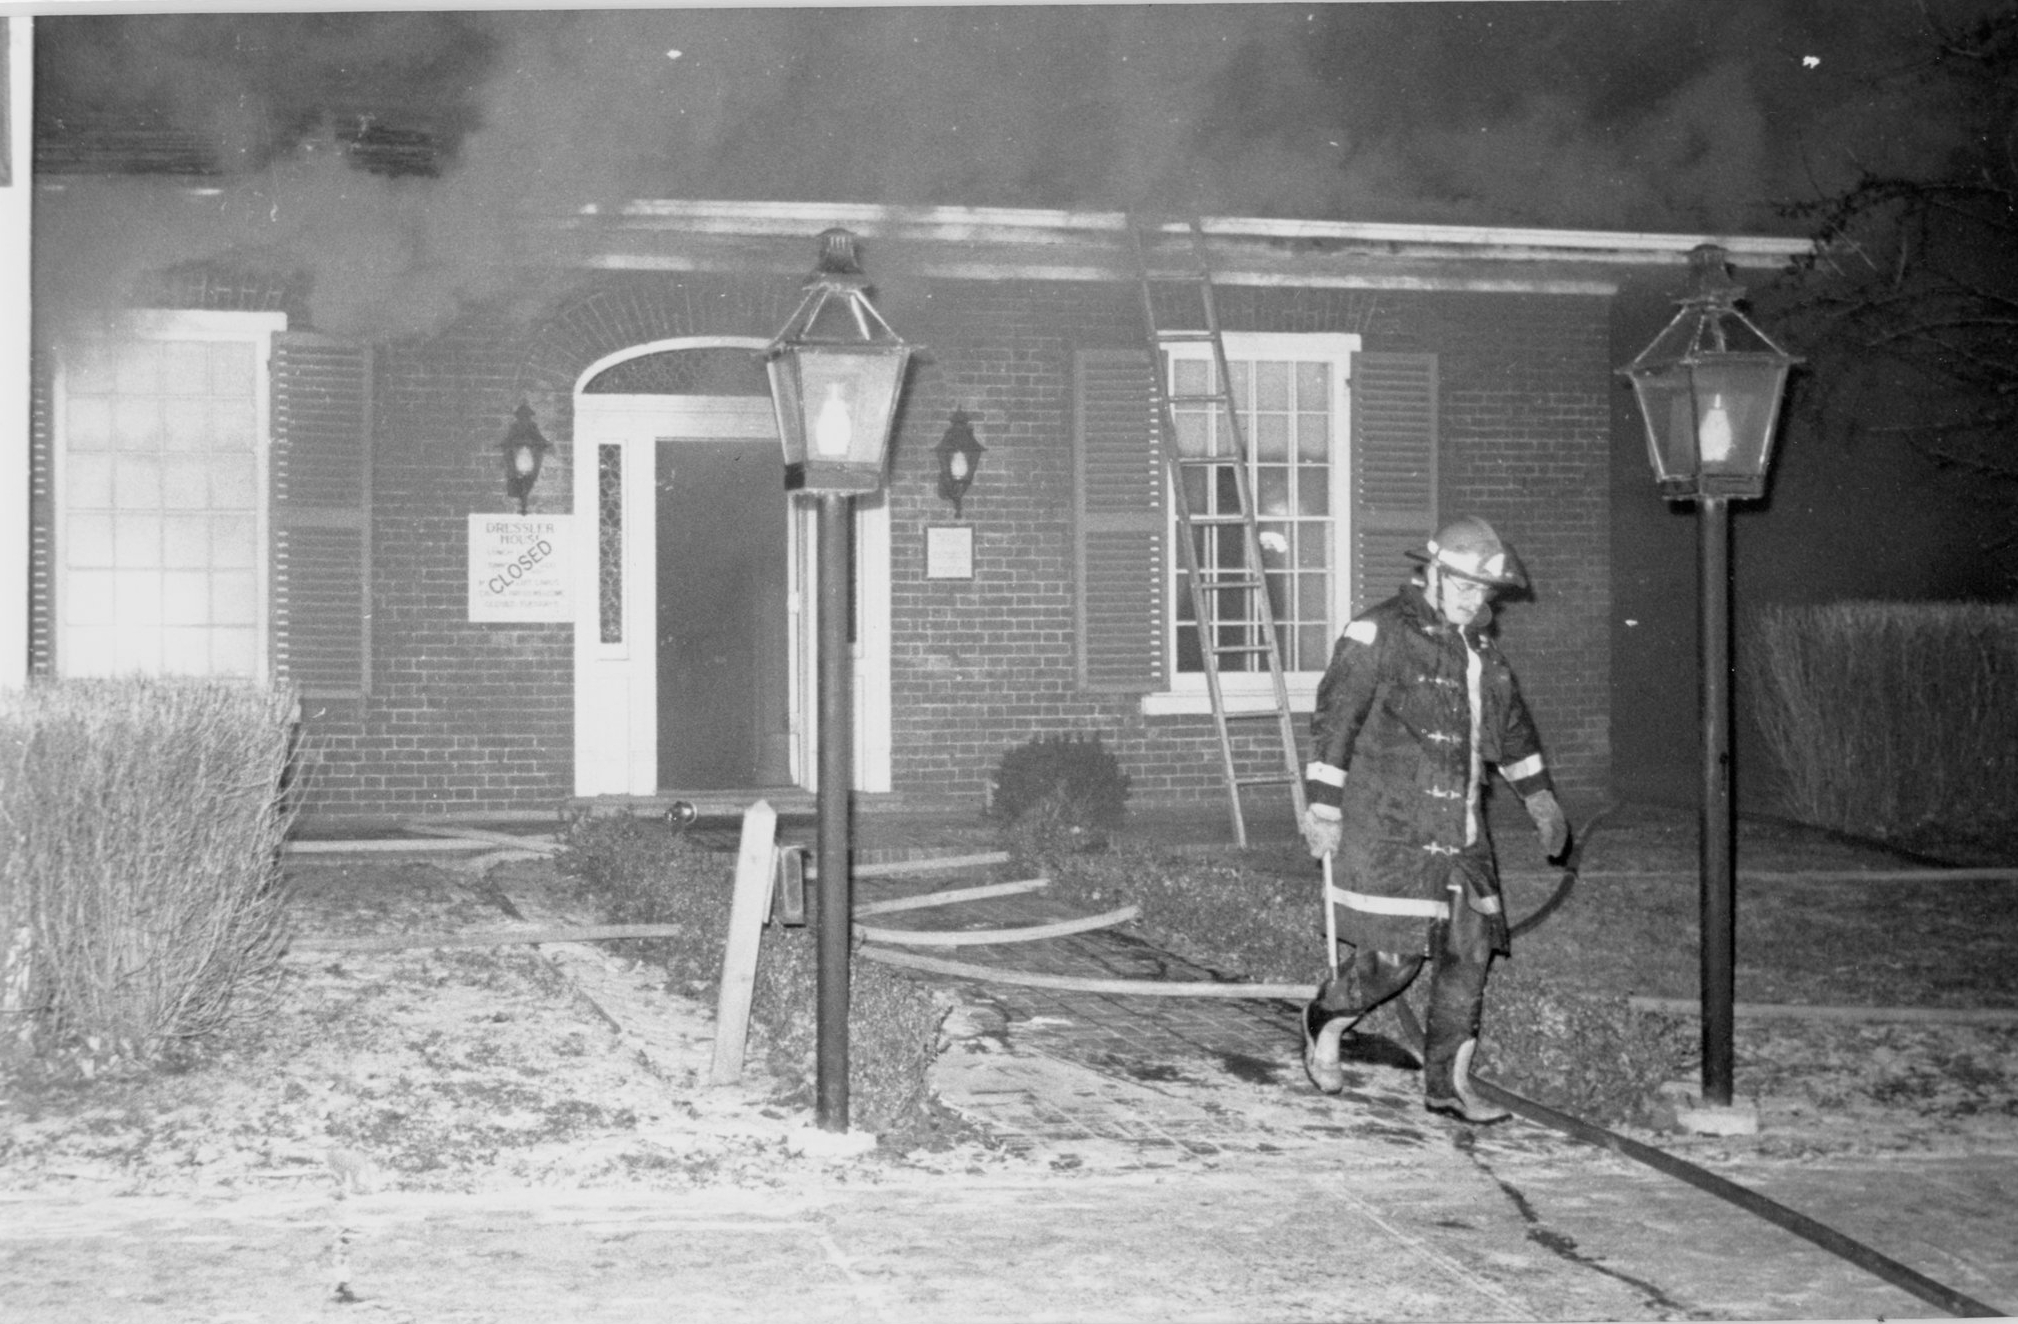 Extinguishing the fire at Marie Dressler House   Photograph  1989  Marie Dressler Foundation Collection